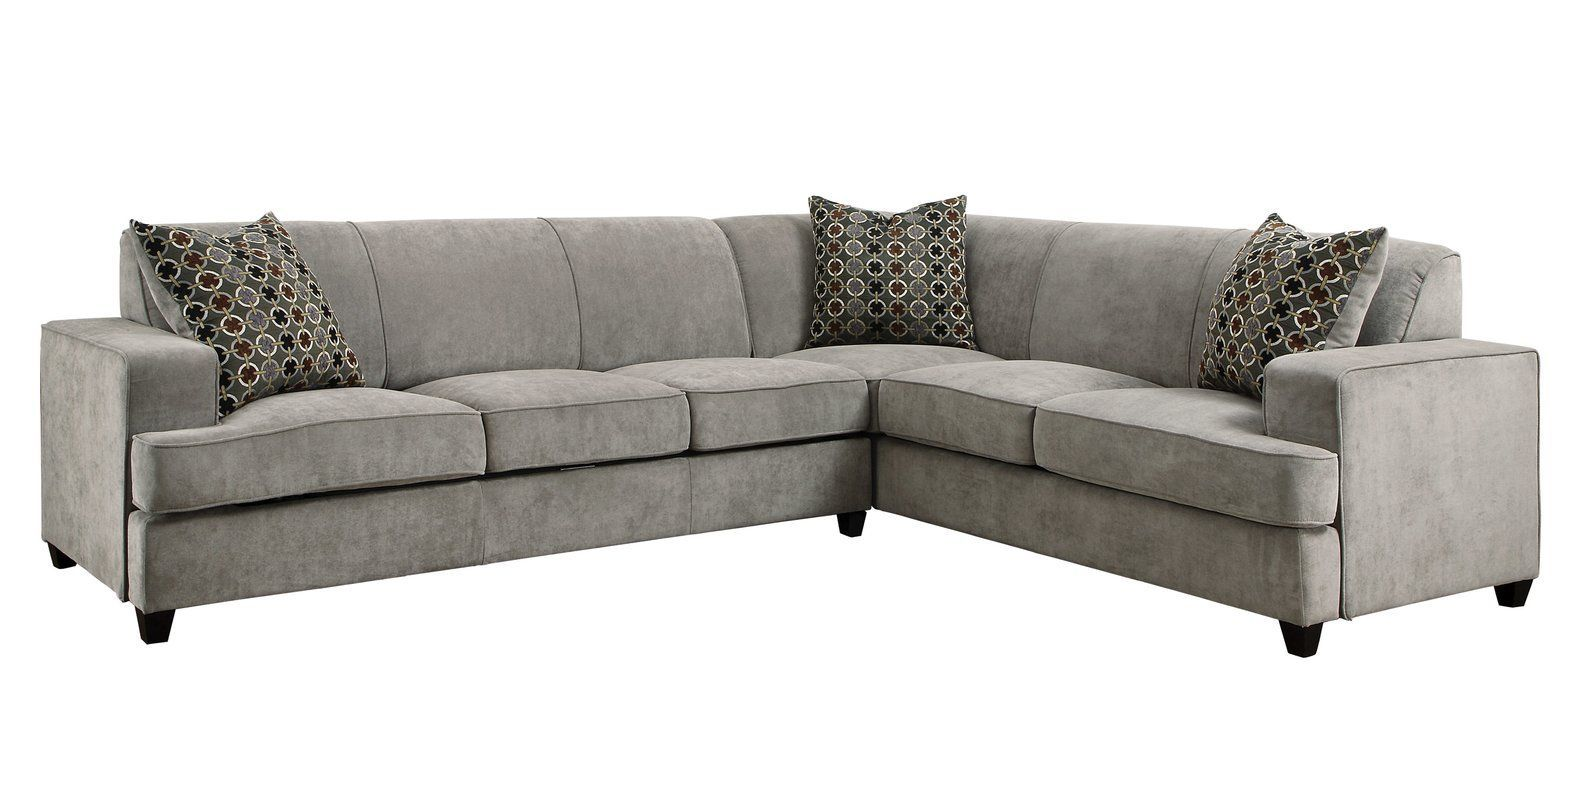 Caswell 114 Right Hand Facing Sleeper Sectional Sectional